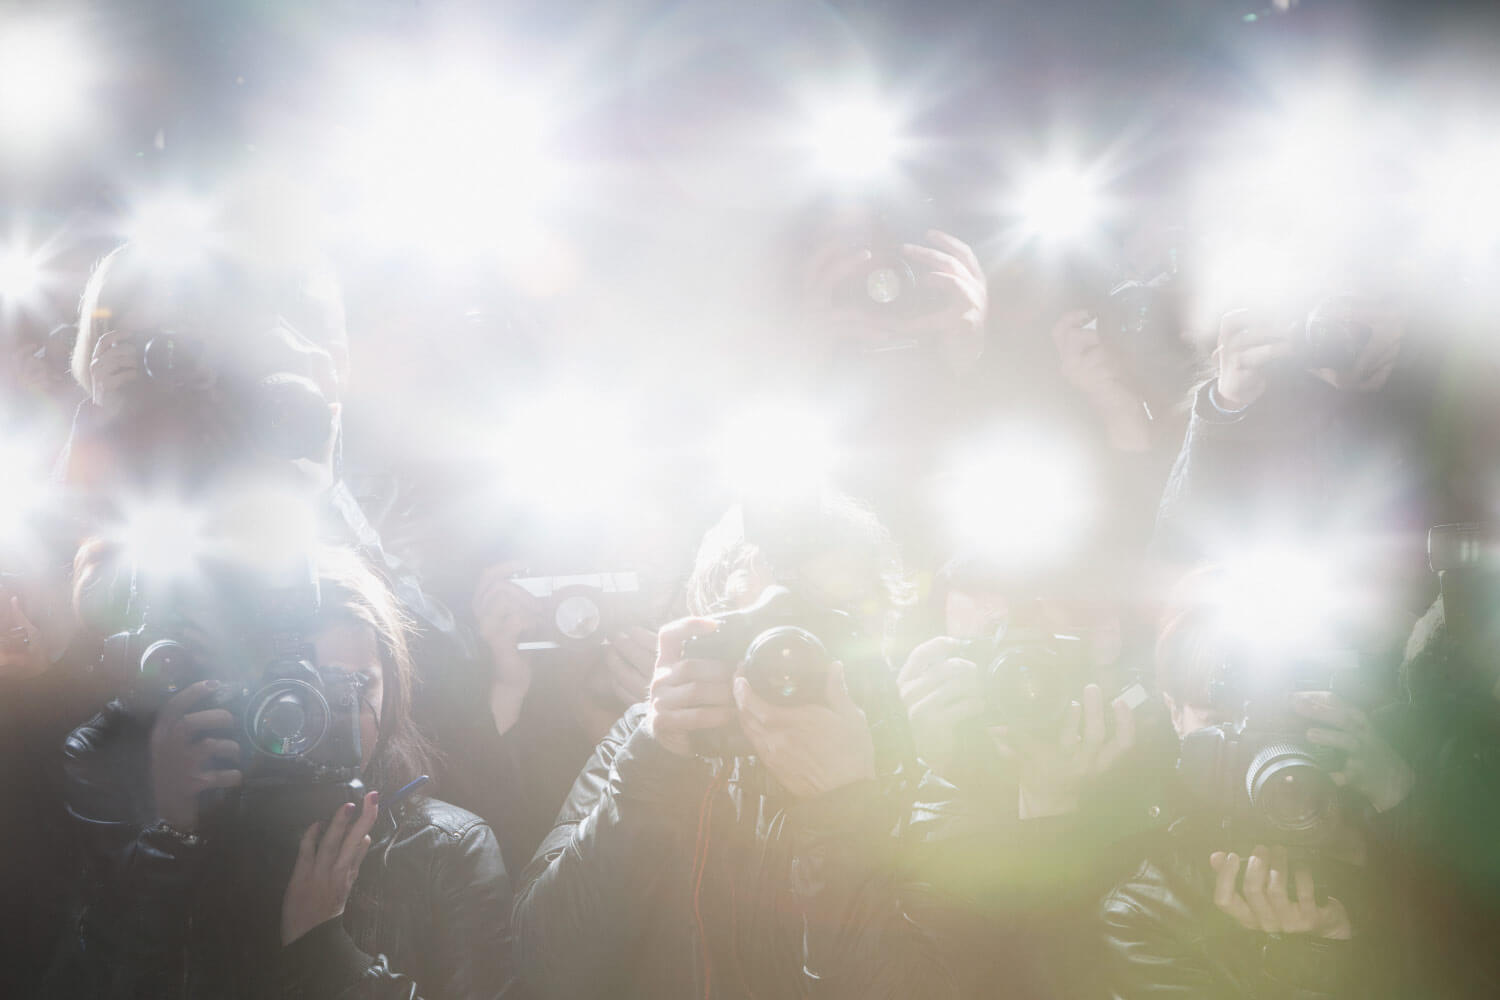 Flashing lights from paparazzi cameras taking pictures of celebrities after cosmetic dentistry